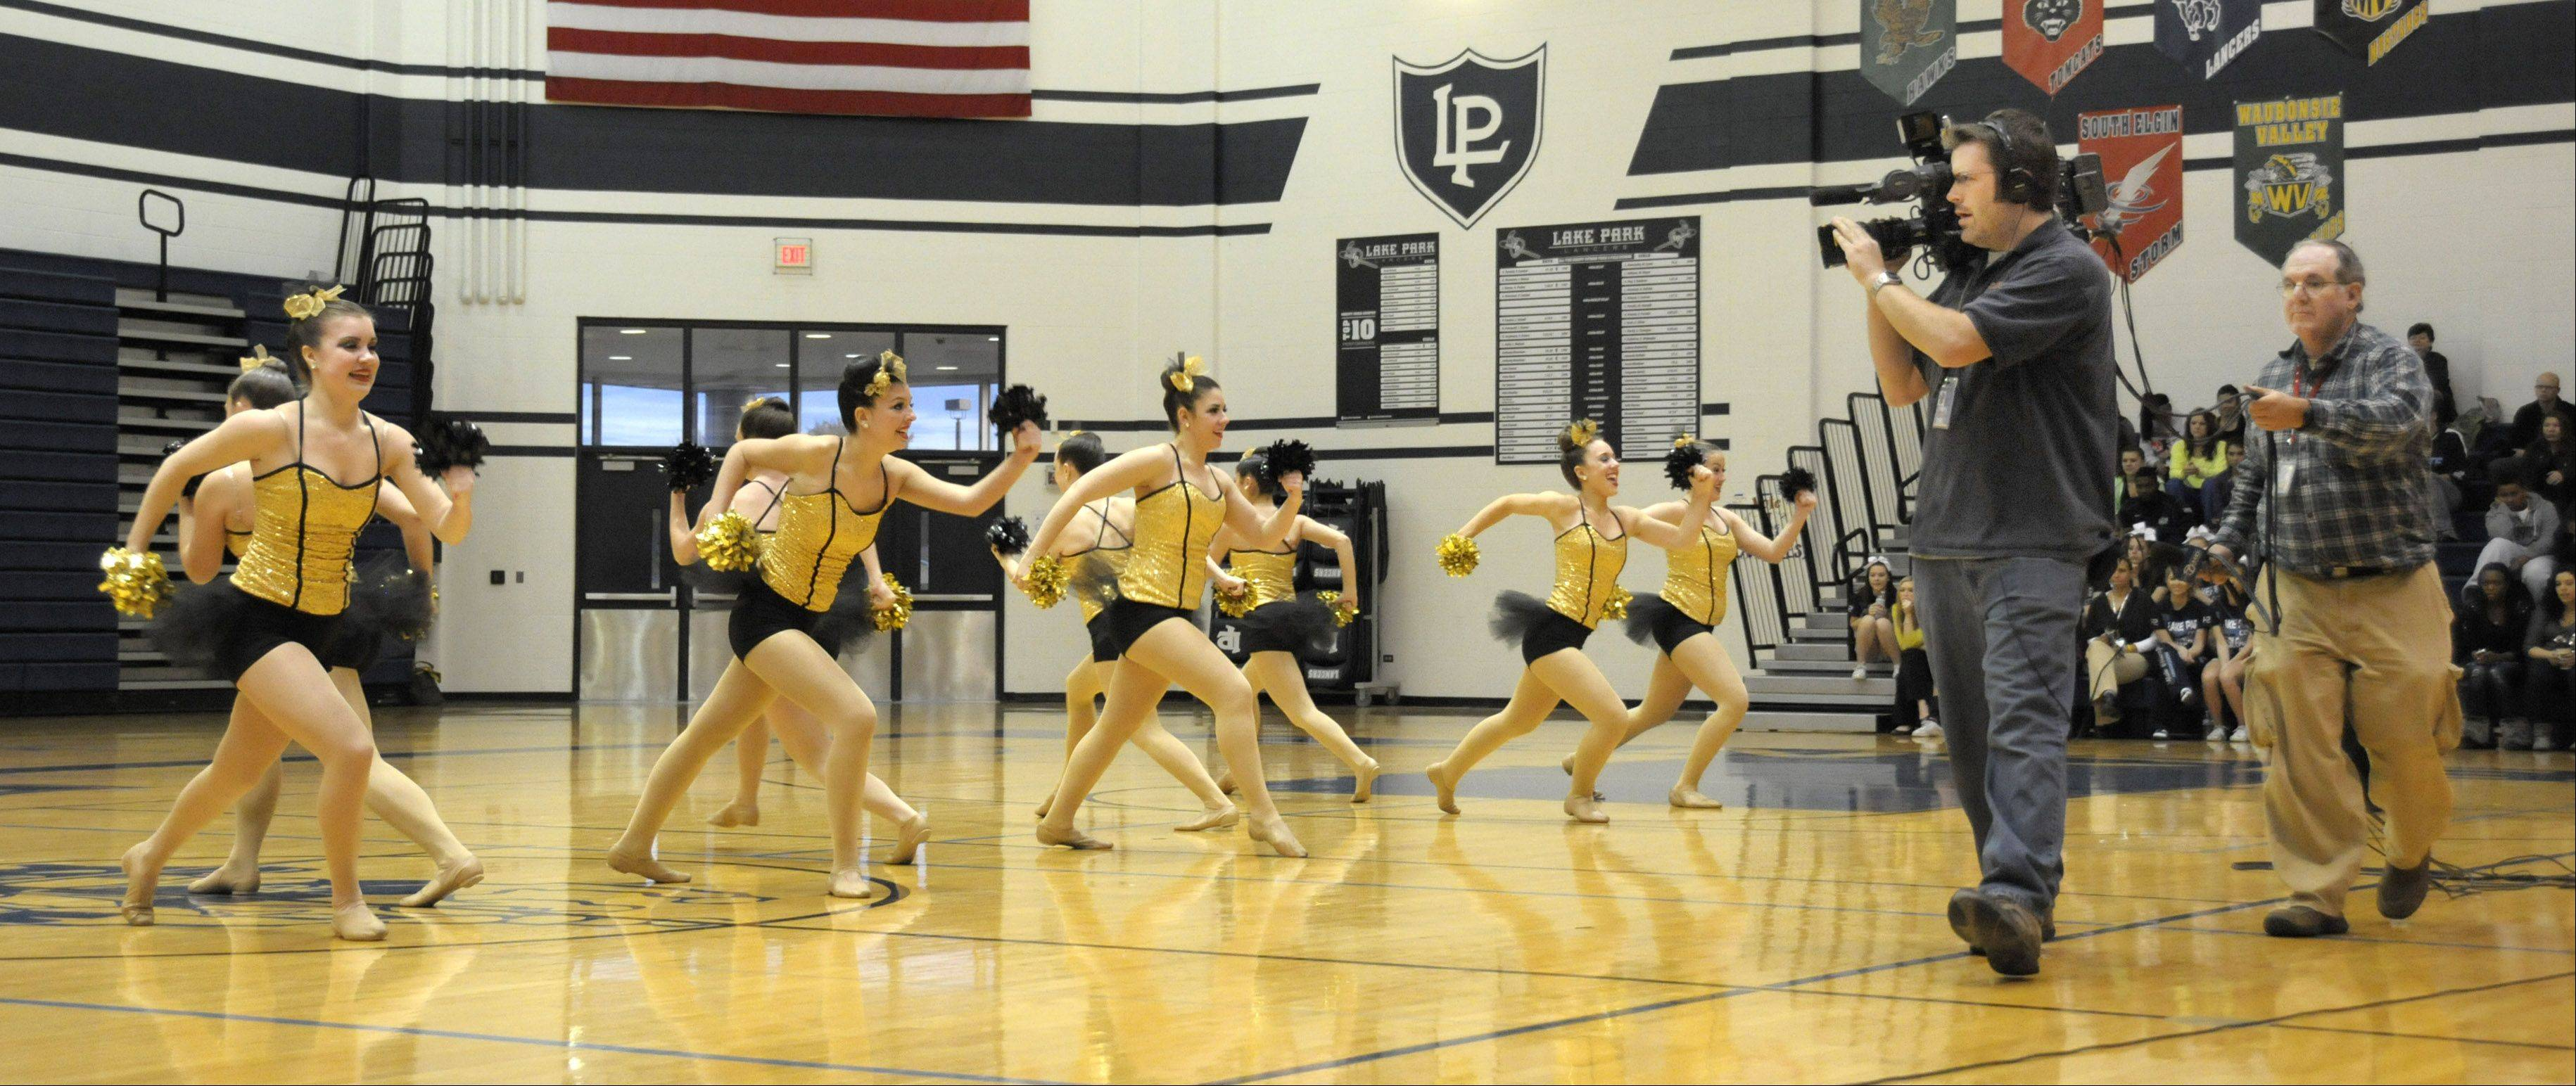 "Lake Park High School's Lancettes dance team performs live Monday on ABC 7's morning news show. The team is competing against other suburban dance squads in the ""Dance Team Dance-off."" Viewers can vote Thursday and the winning team will be announced Friday."